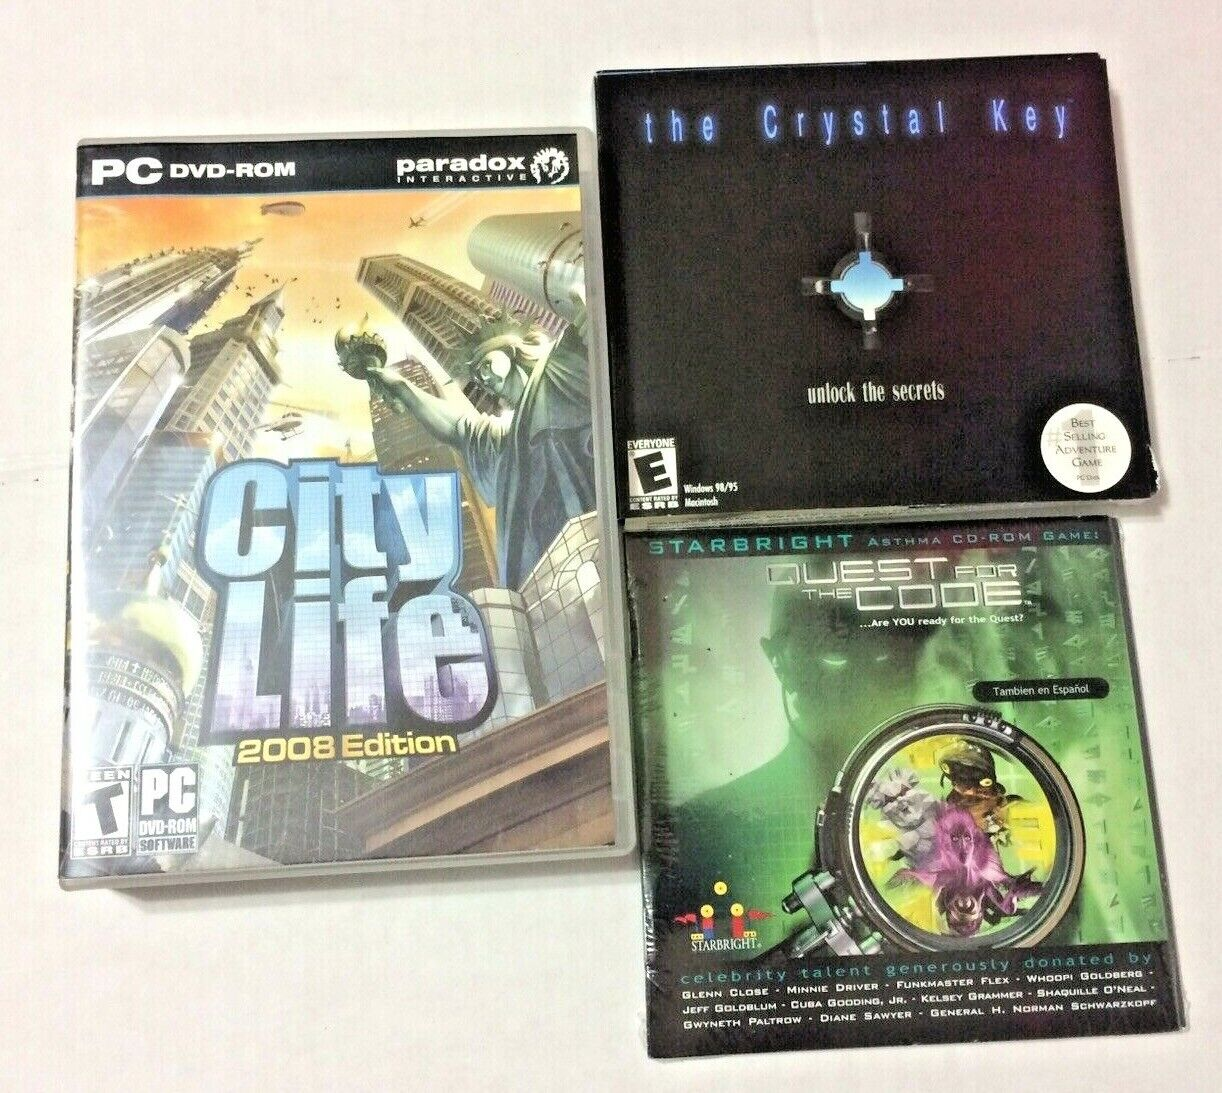 Lot Of 3 PC Video Games On DVD CD-ROM CIty Life, Crystal Key Code Quest  - $2.99